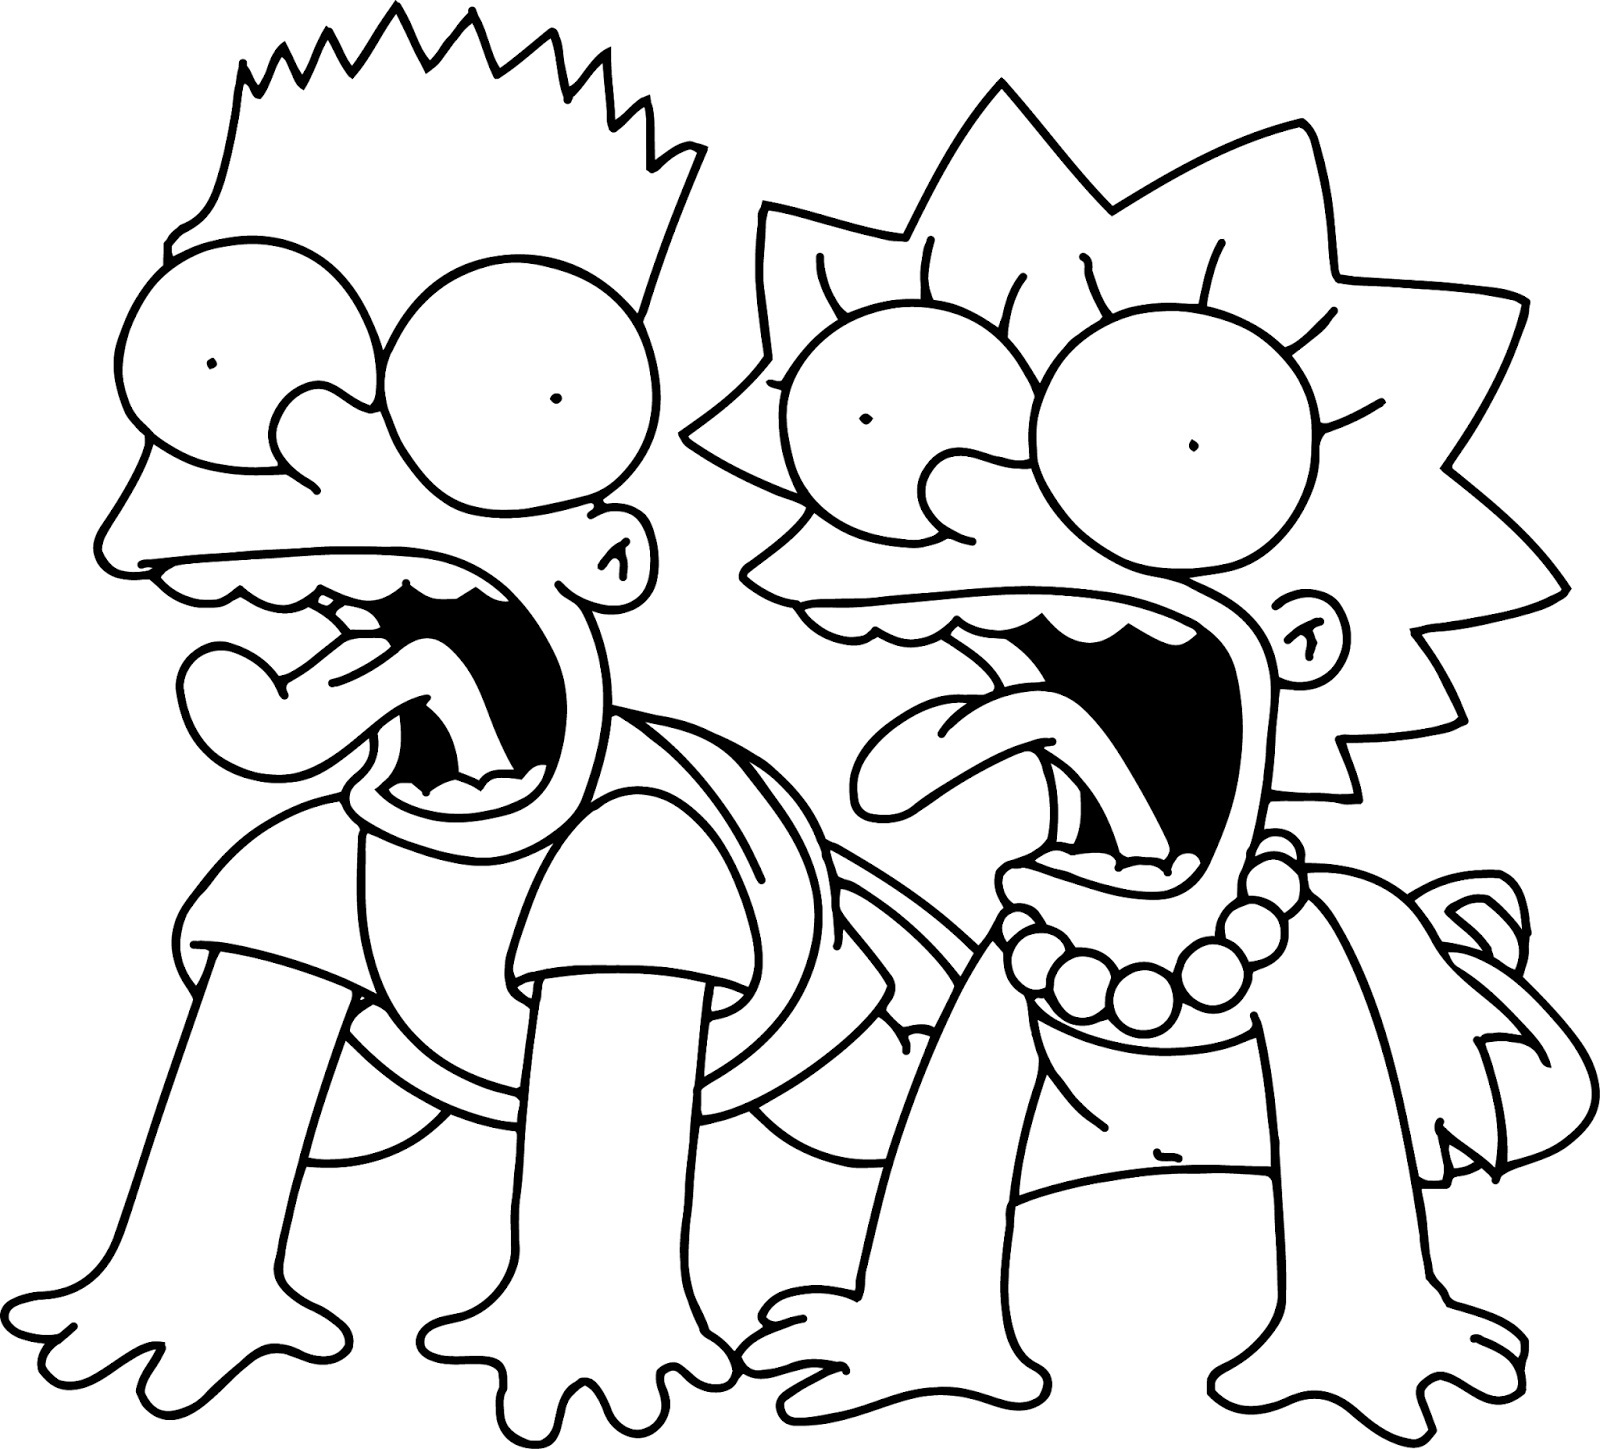 homer simpson halloween coloring pages - photo#32